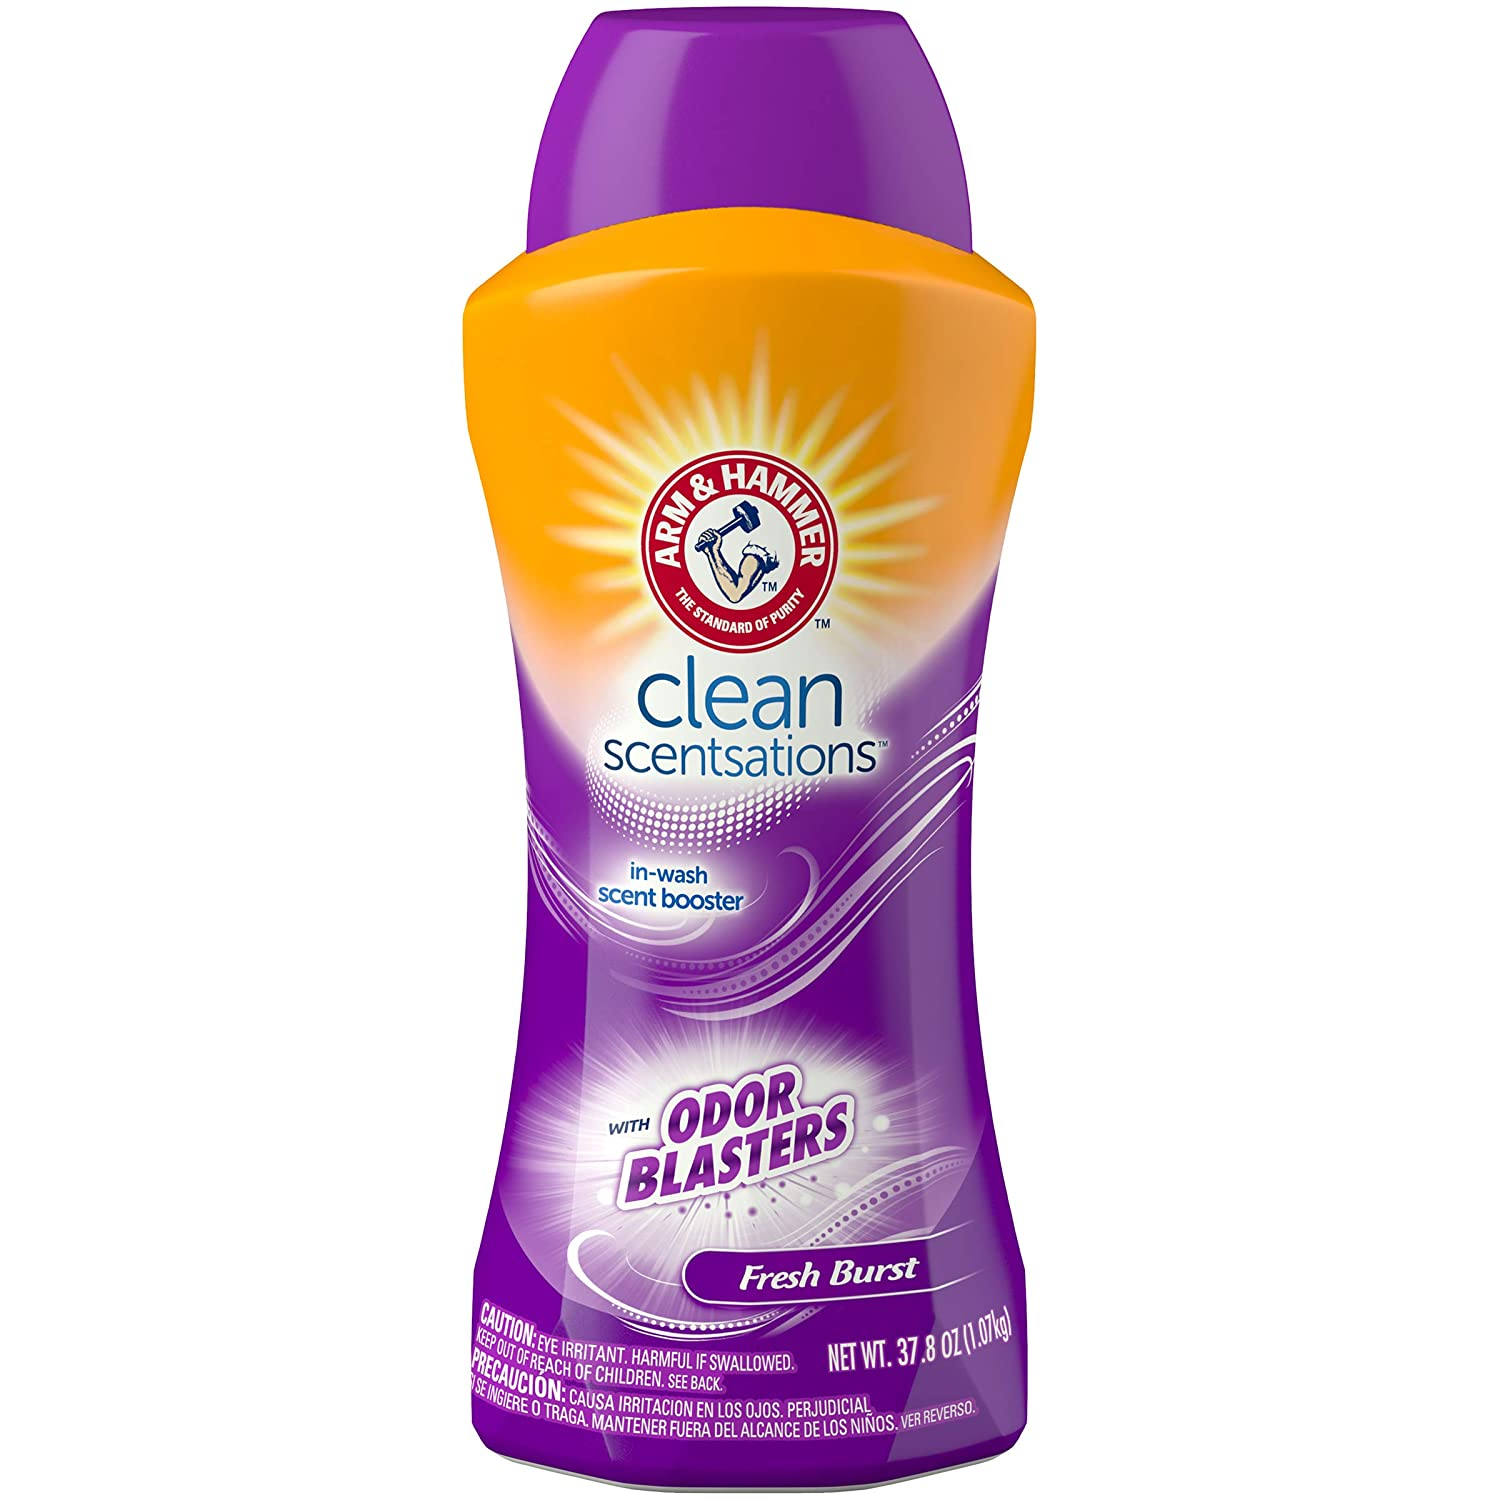 Arm & Hammer Clean Scentsations In-Wash Freshness Booster, Odor Blaster, 37.8 Ounce